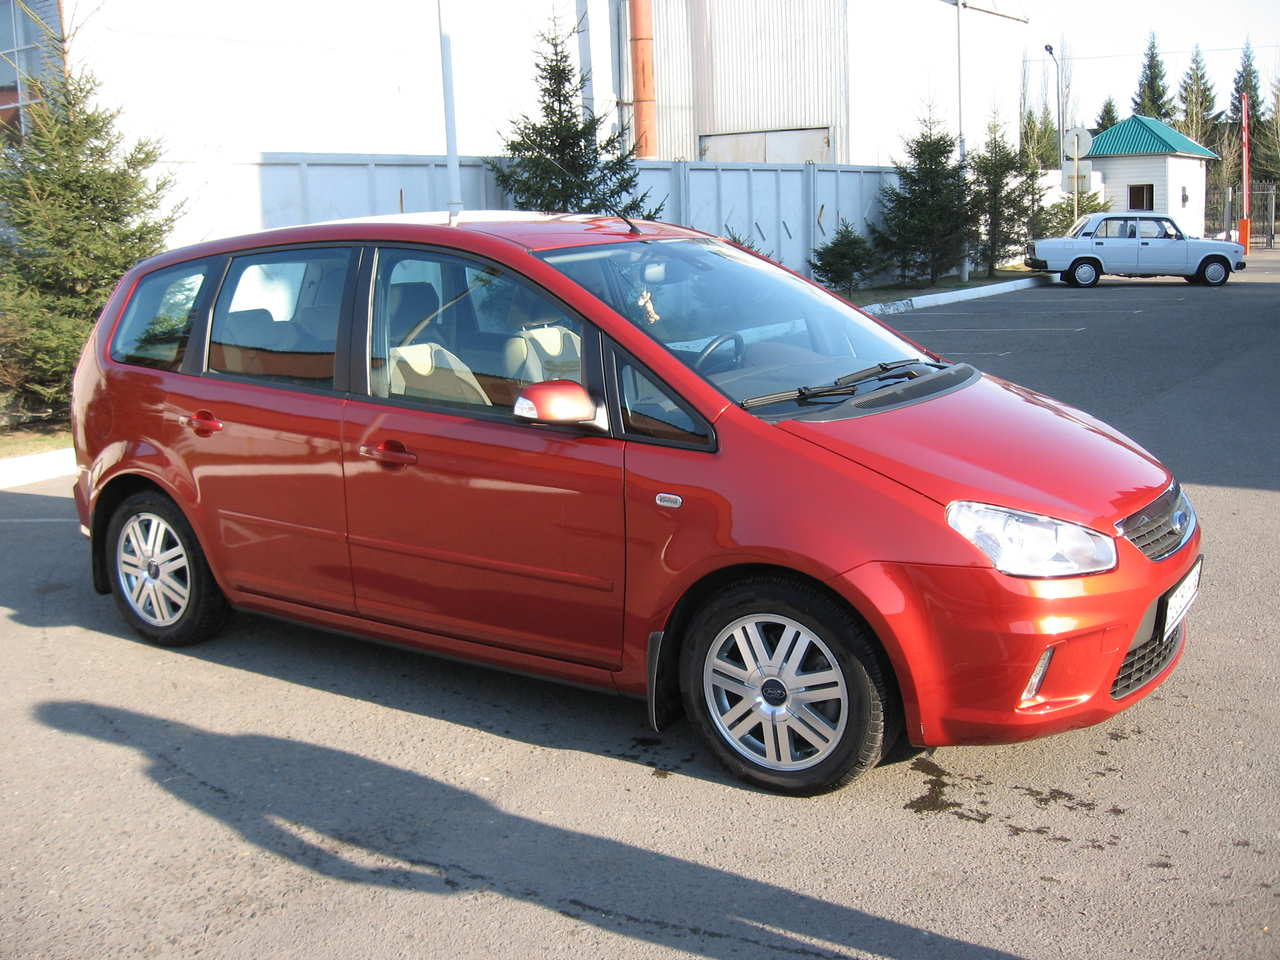 2008 ford c max pictures gasoline ff automatic. Black Bedroom Furniture Sets. Home Design Ideas